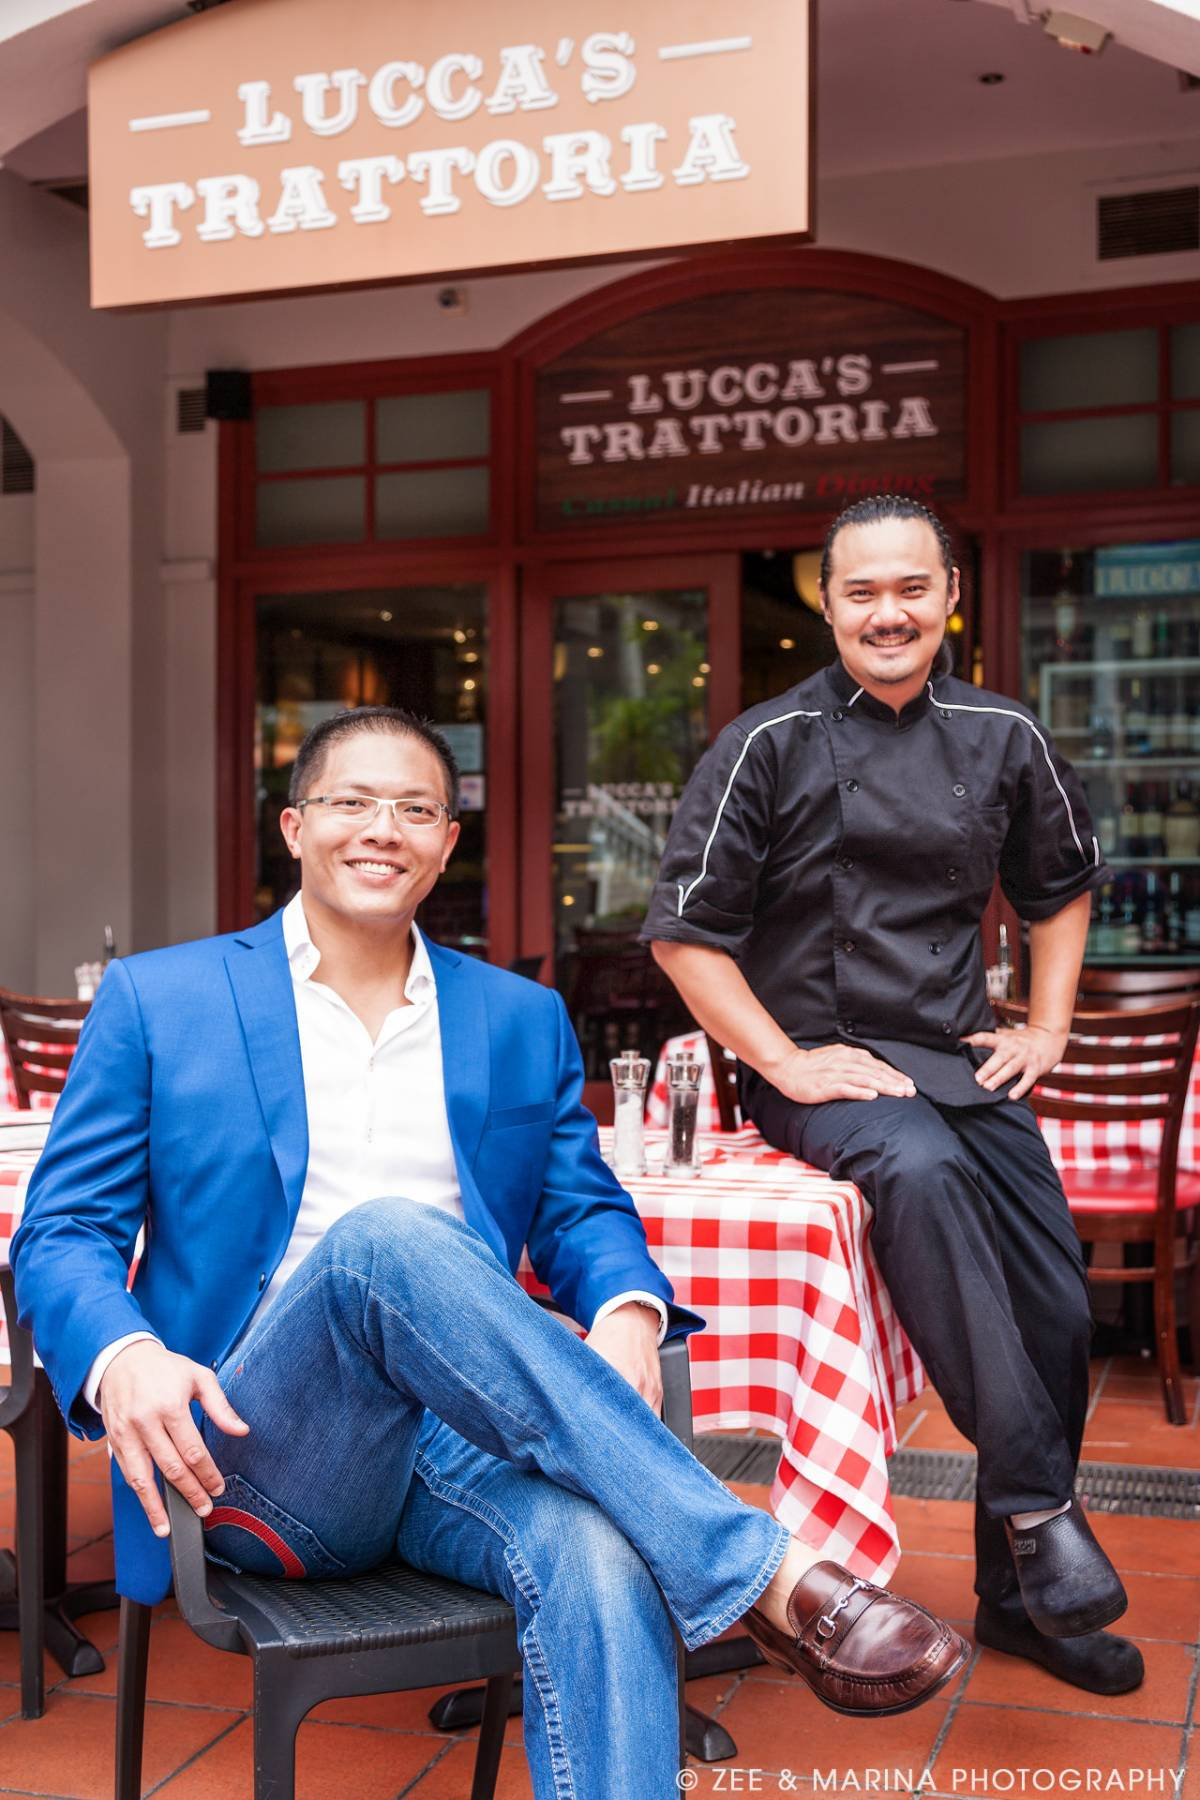 Lucca's Trattoria brings Italy to Singapore